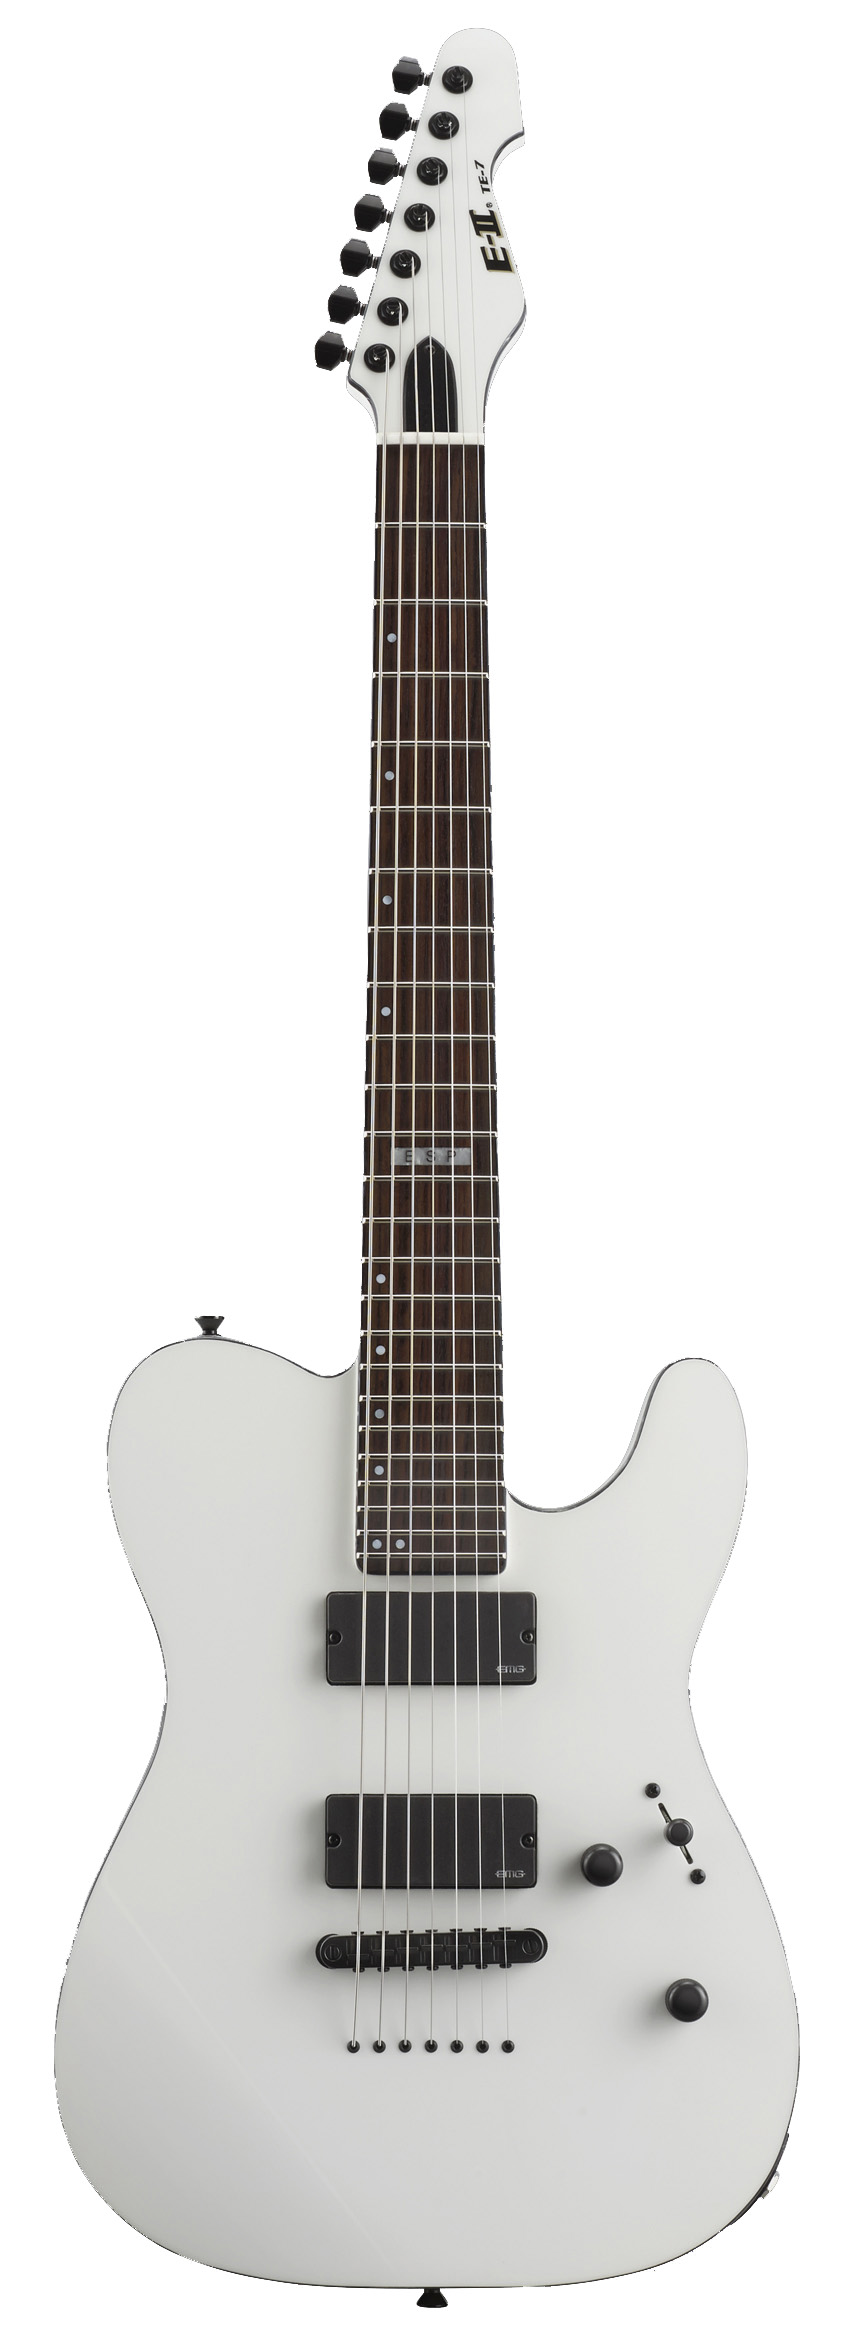 ESP TE-7 SW TE Series Tele Electric Guitar with 7 Strings and Snow White Finish